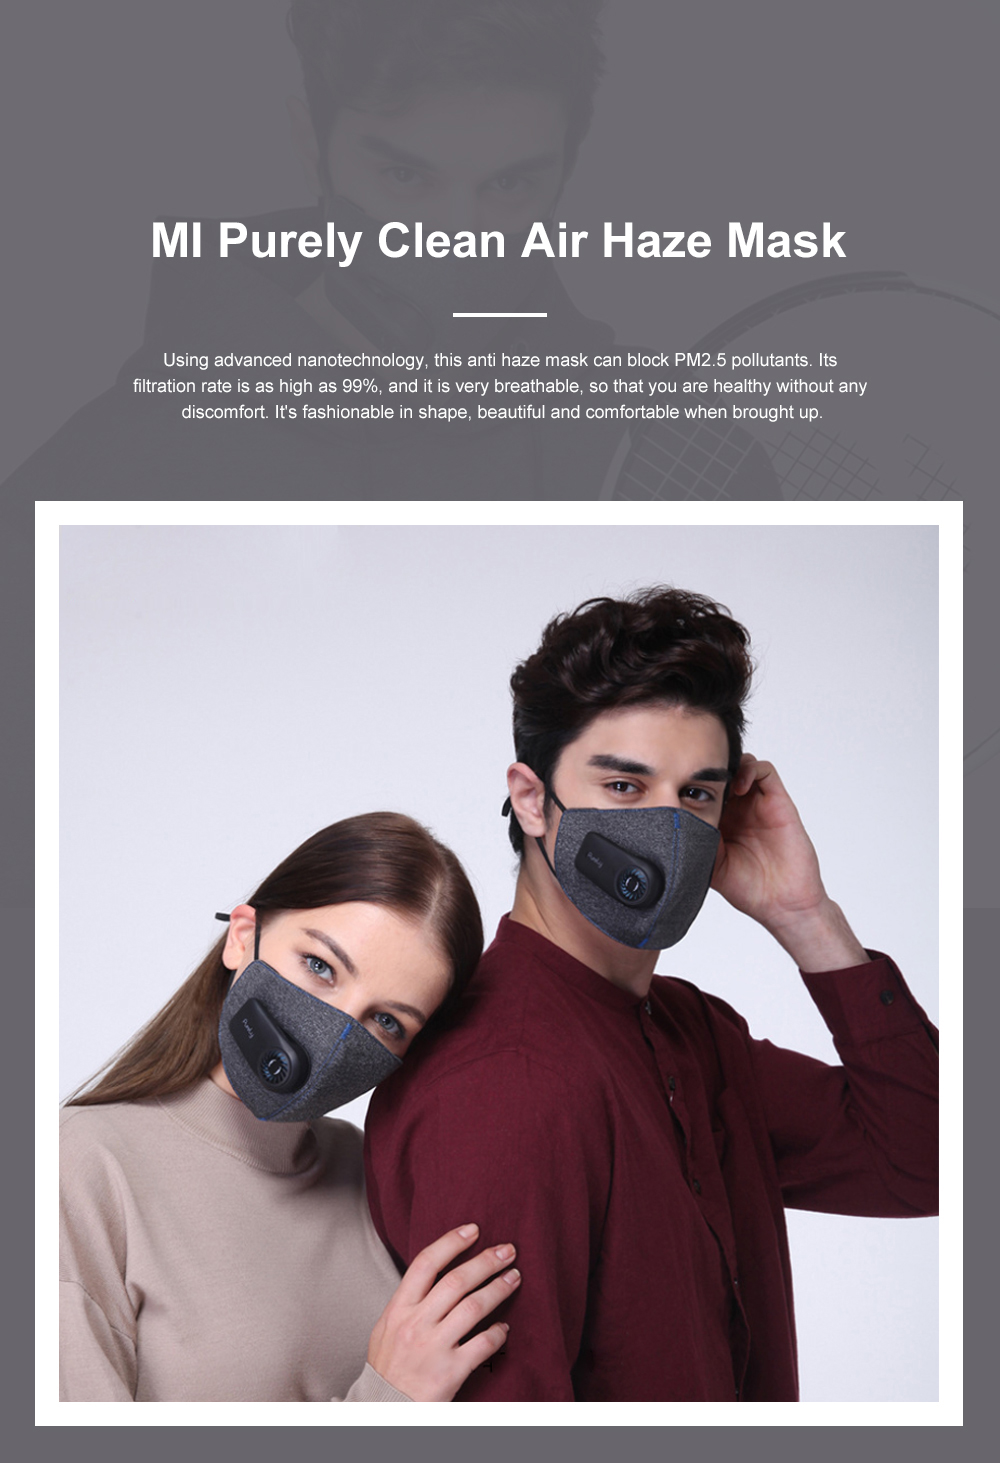 MI Purely Clean Air Haze Mask Anti-smog Anti Haze PM2.5 Dust Earhook Mask With Filter 2019 NEW 0